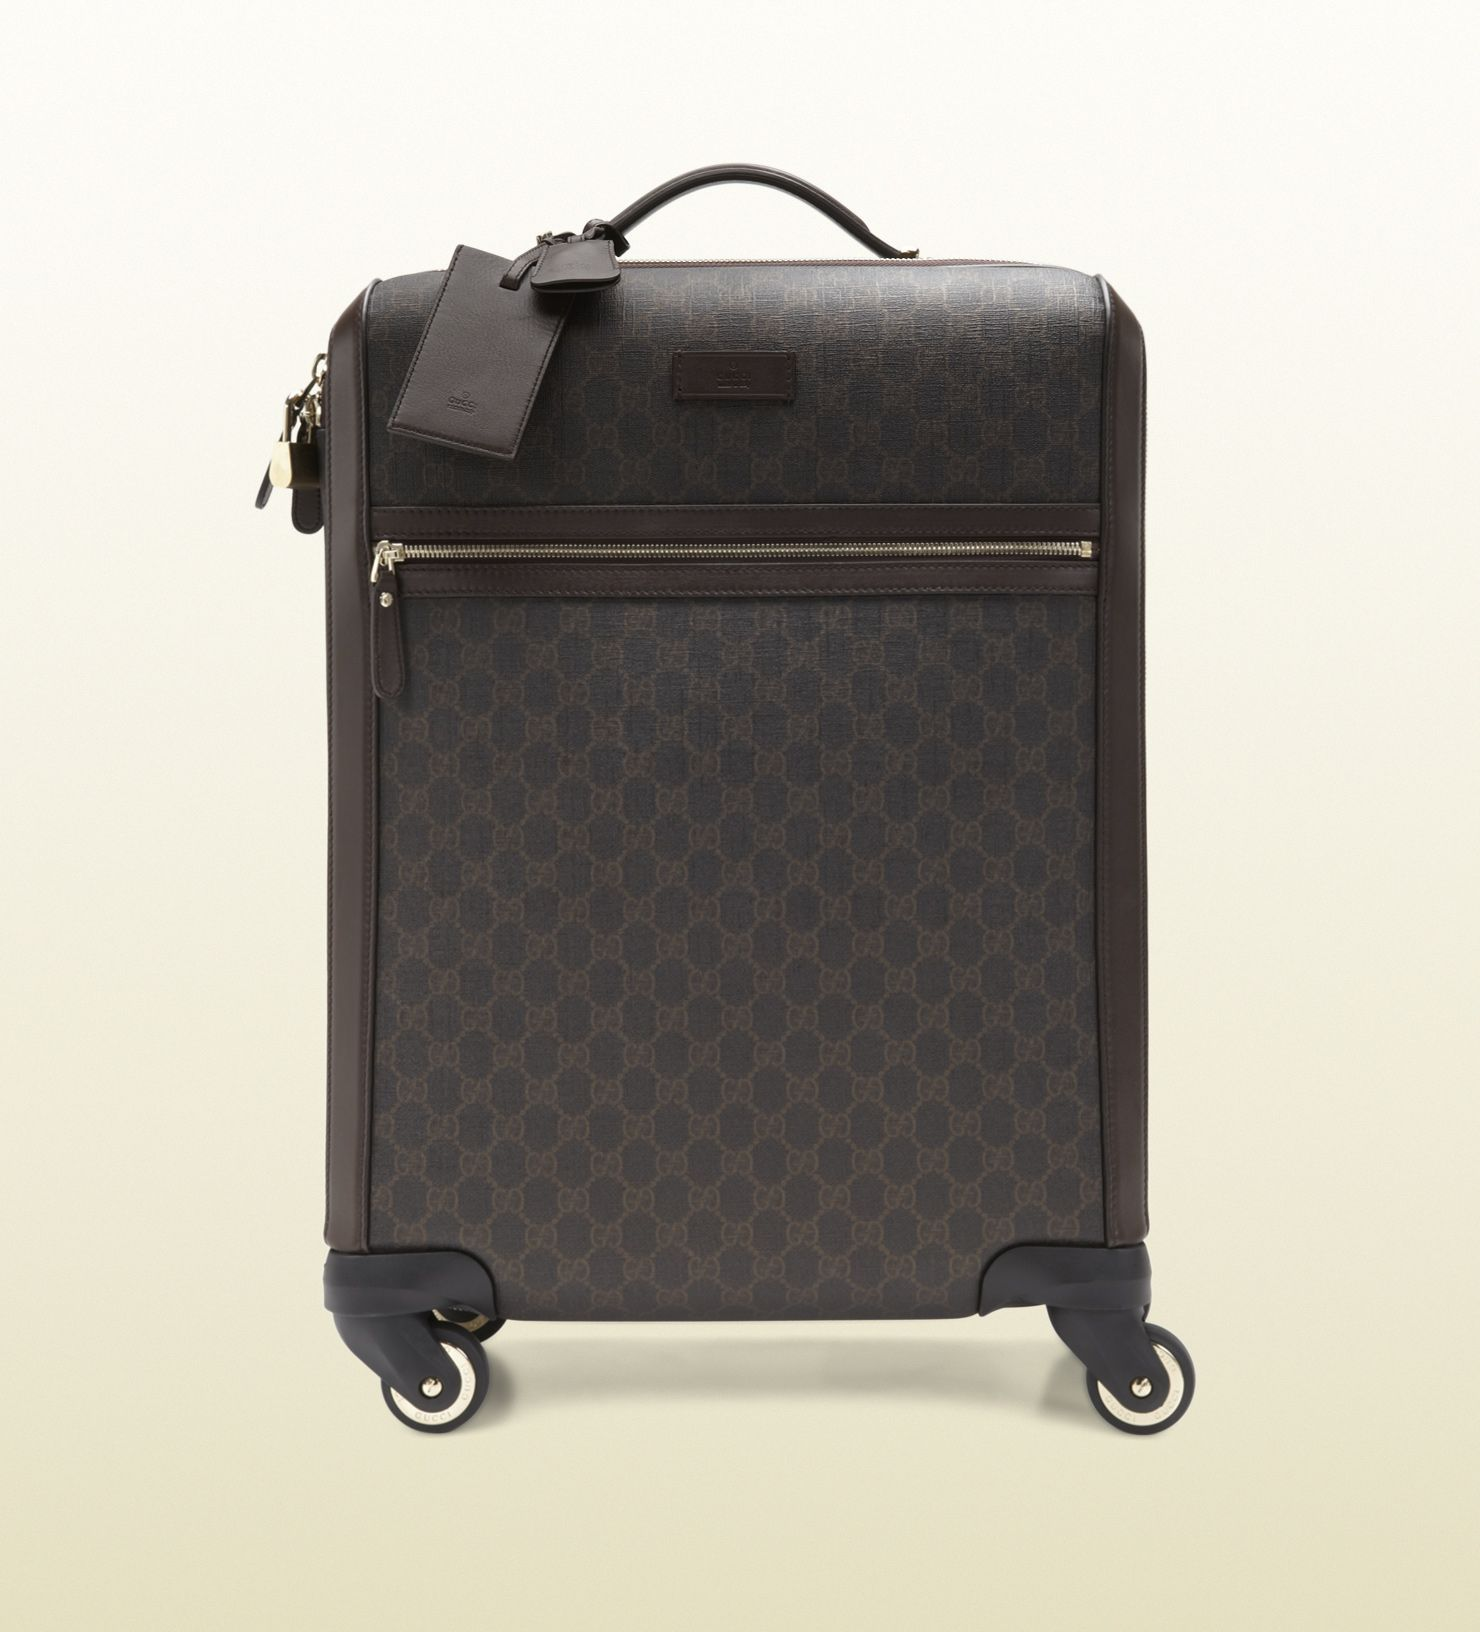 GG supreme canvas carry-on suitcase | Luggages | Pinterest ...